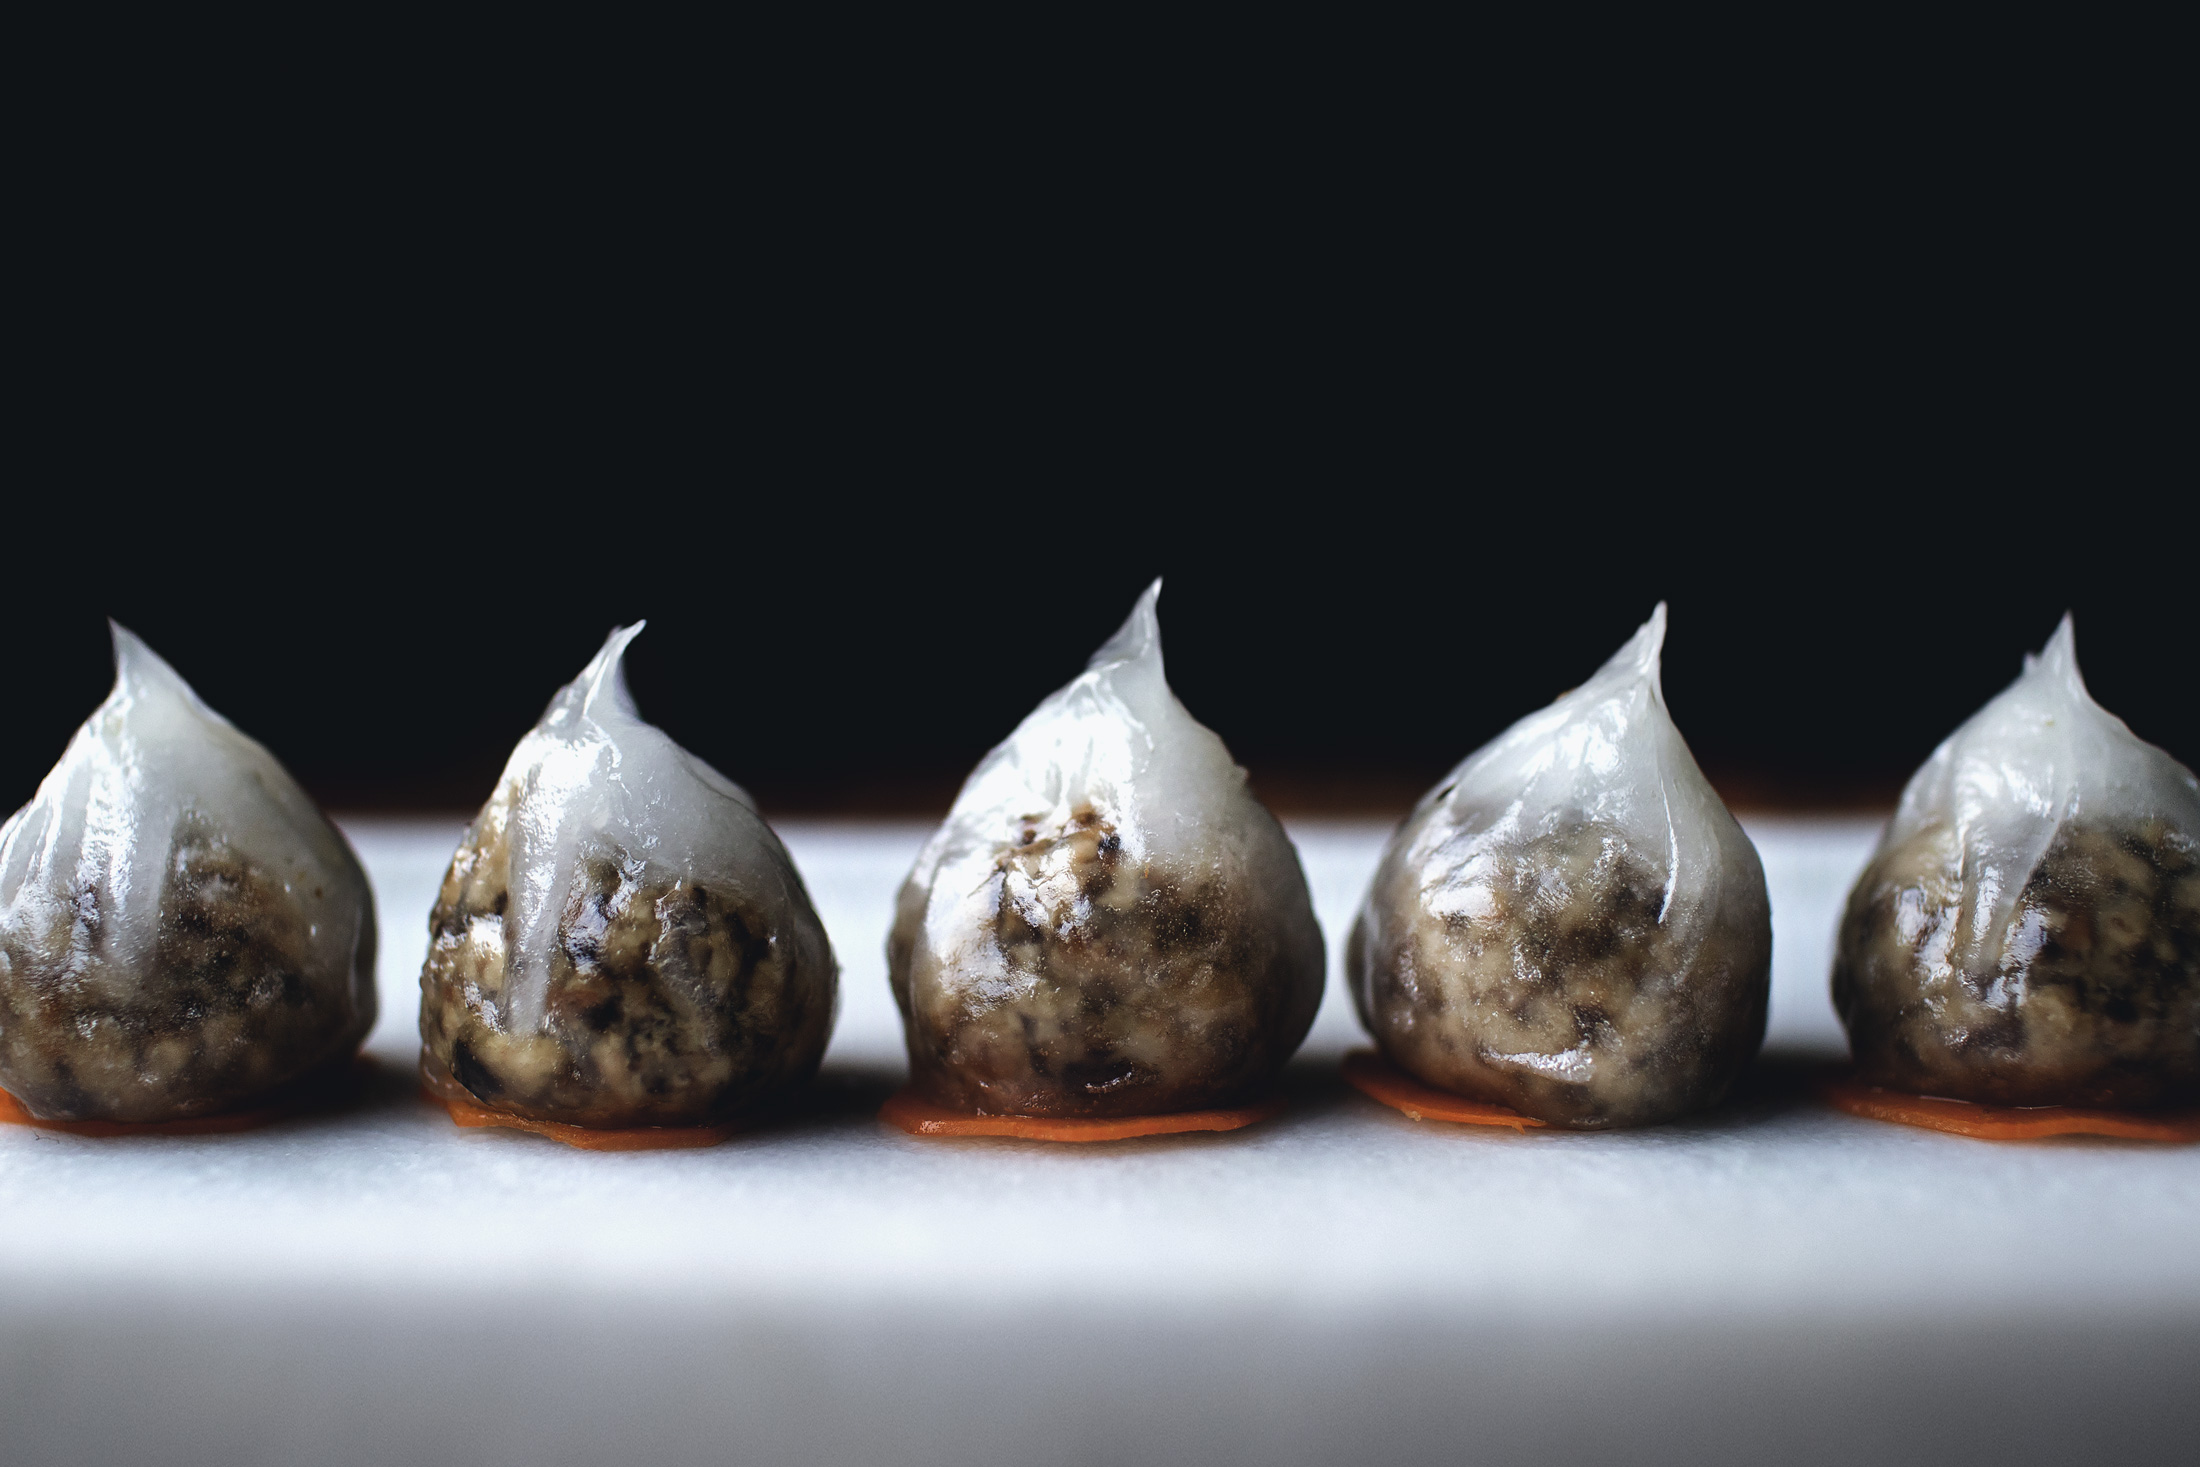 DIM SUM MONTH: GLASS DUMPLINGS W/ MUSHROOMS AND SMOKED GOUDA CHEESE